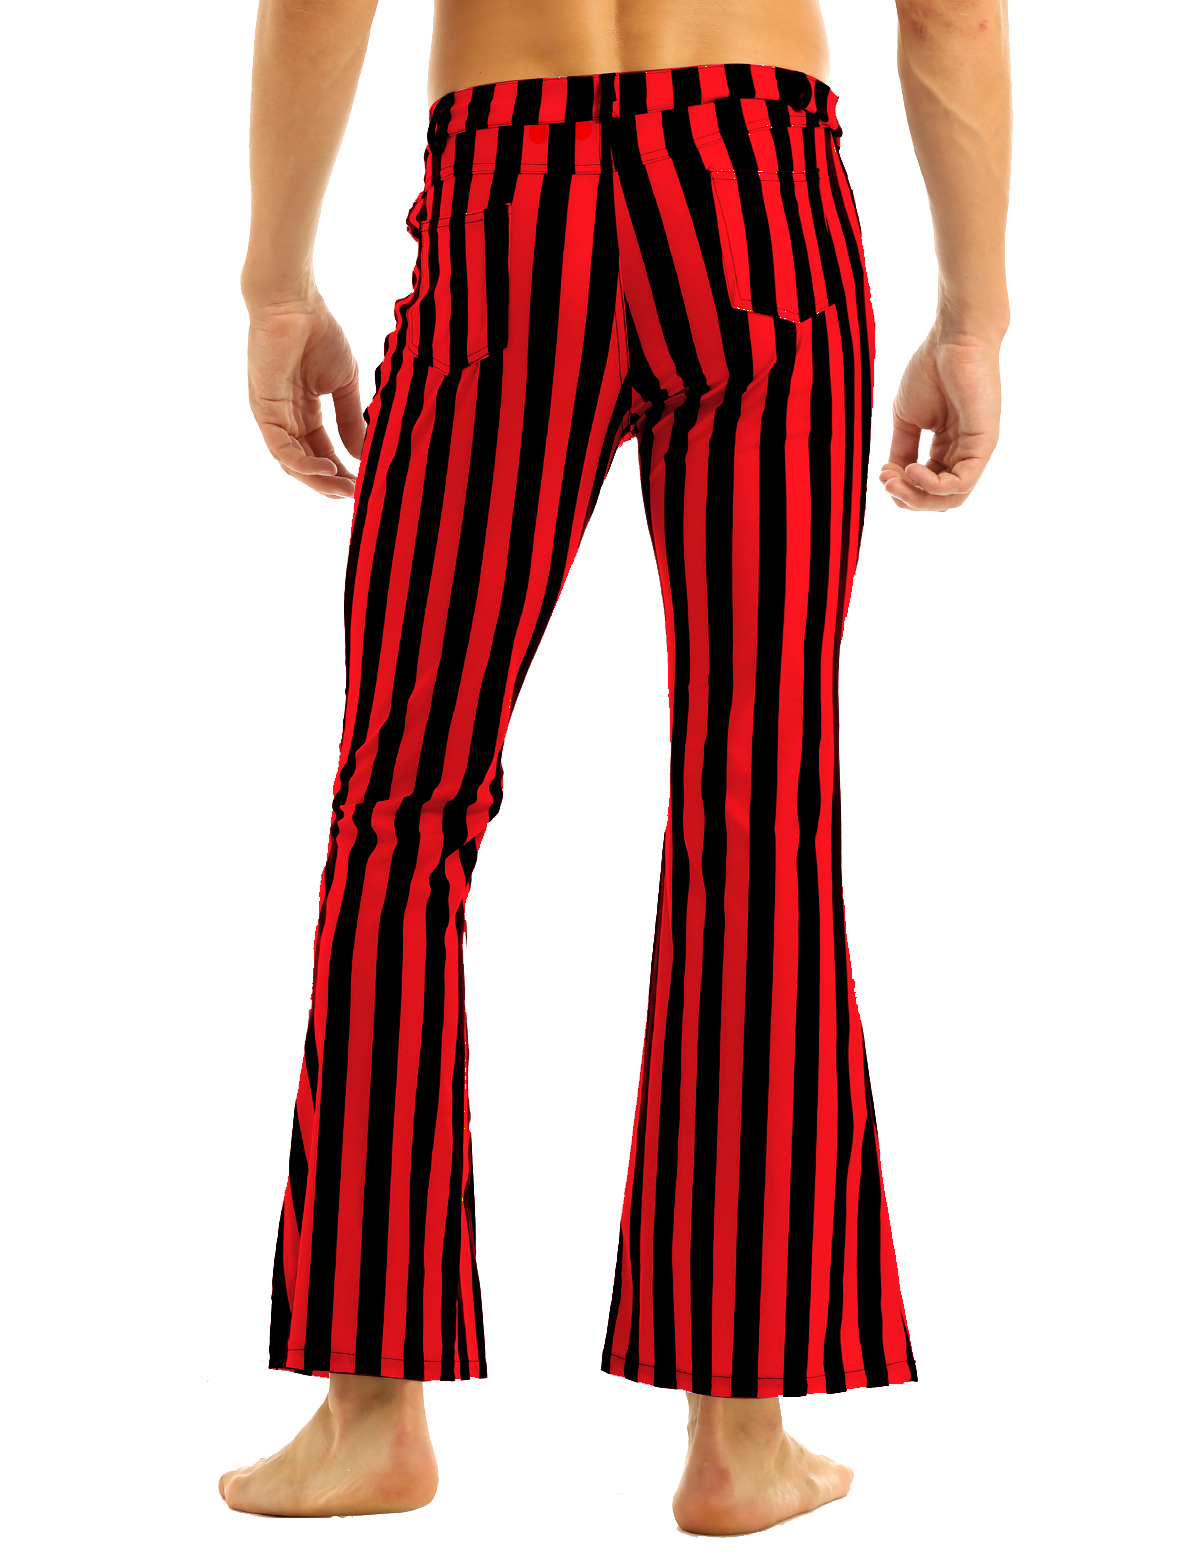 Halloween Party Costume for Men Vintage Stripe Pant Male Long Pant Stretch Bell Bottom Trousers Western Streetwear Clothes Homme 16